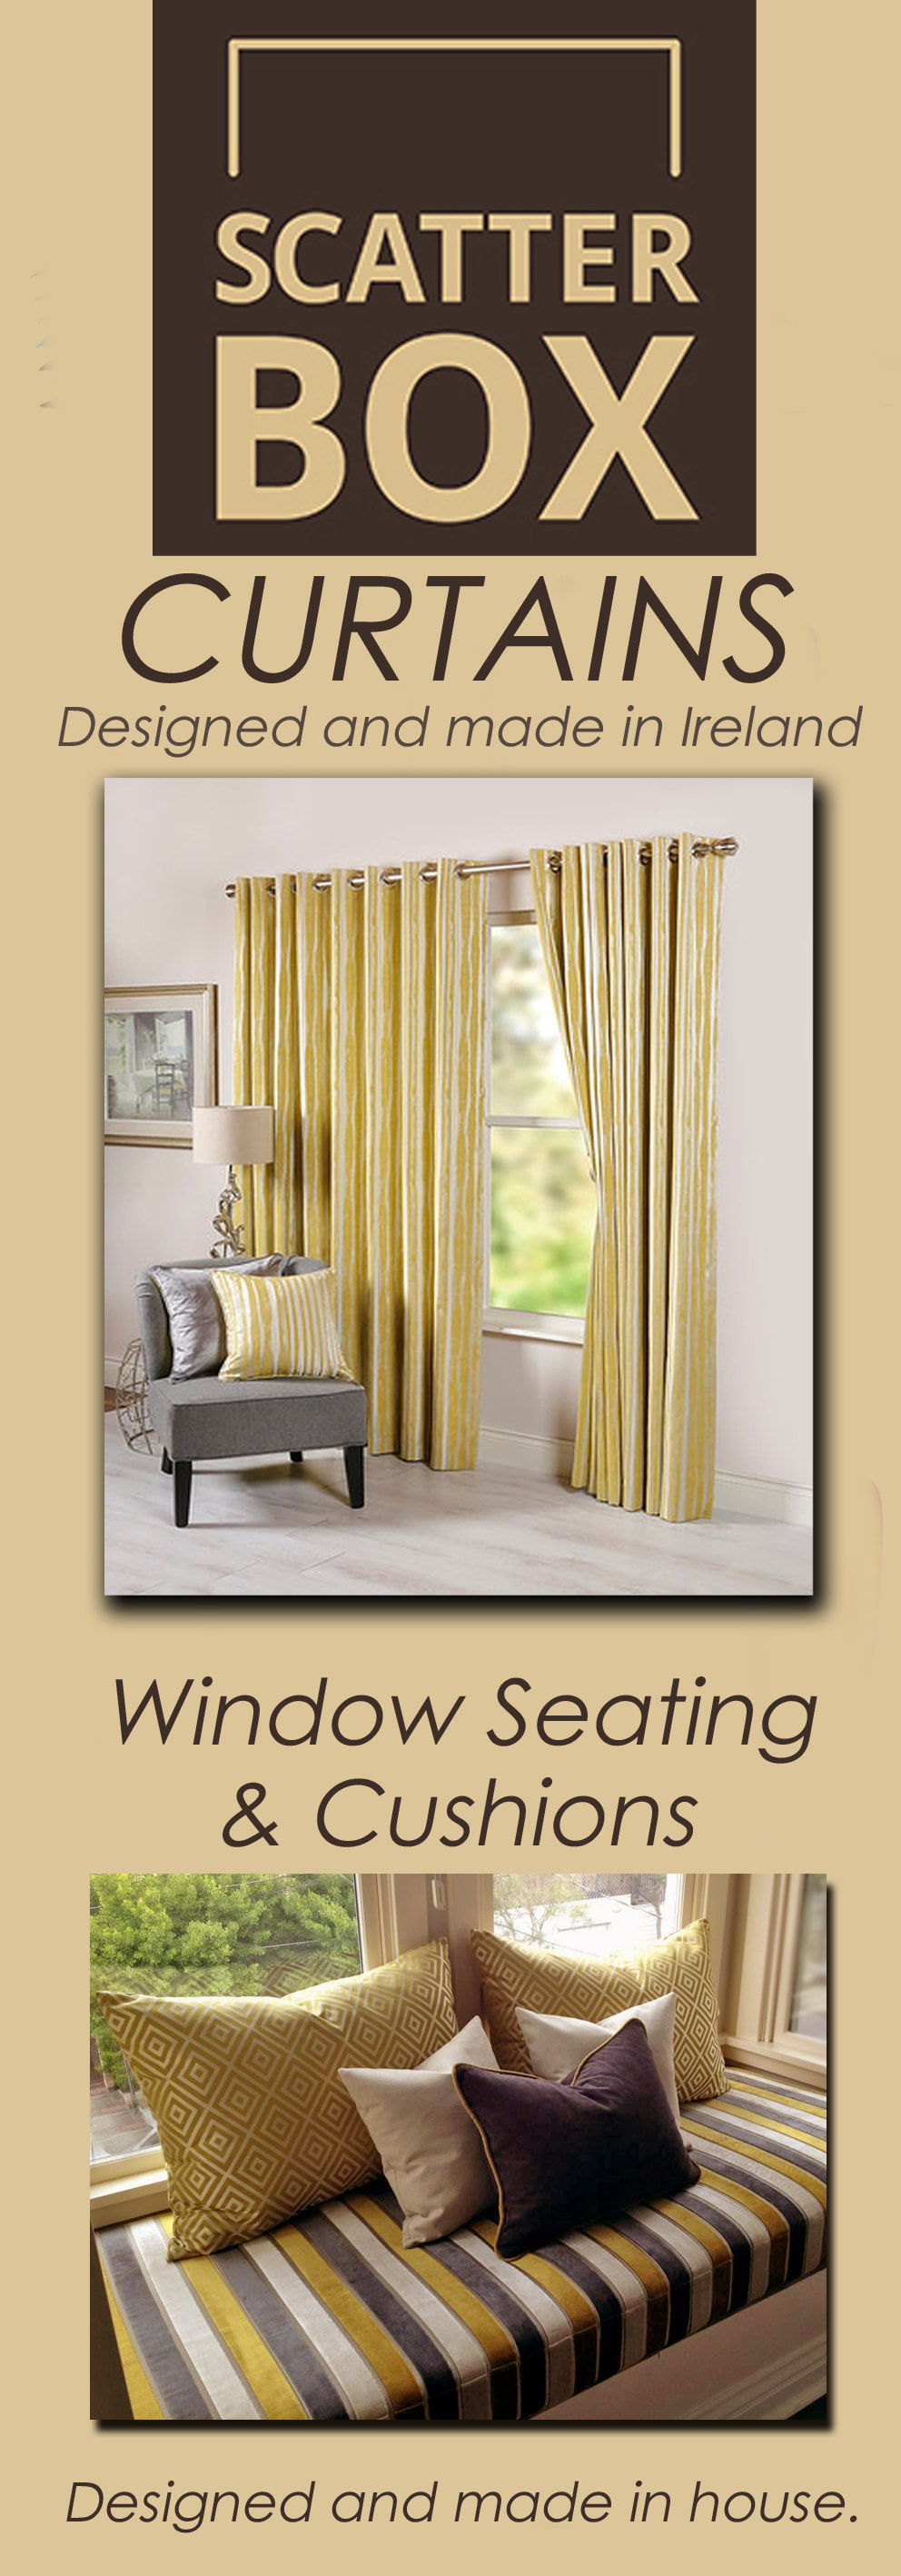 Curtains & Poles - Celtic Blinds Galway